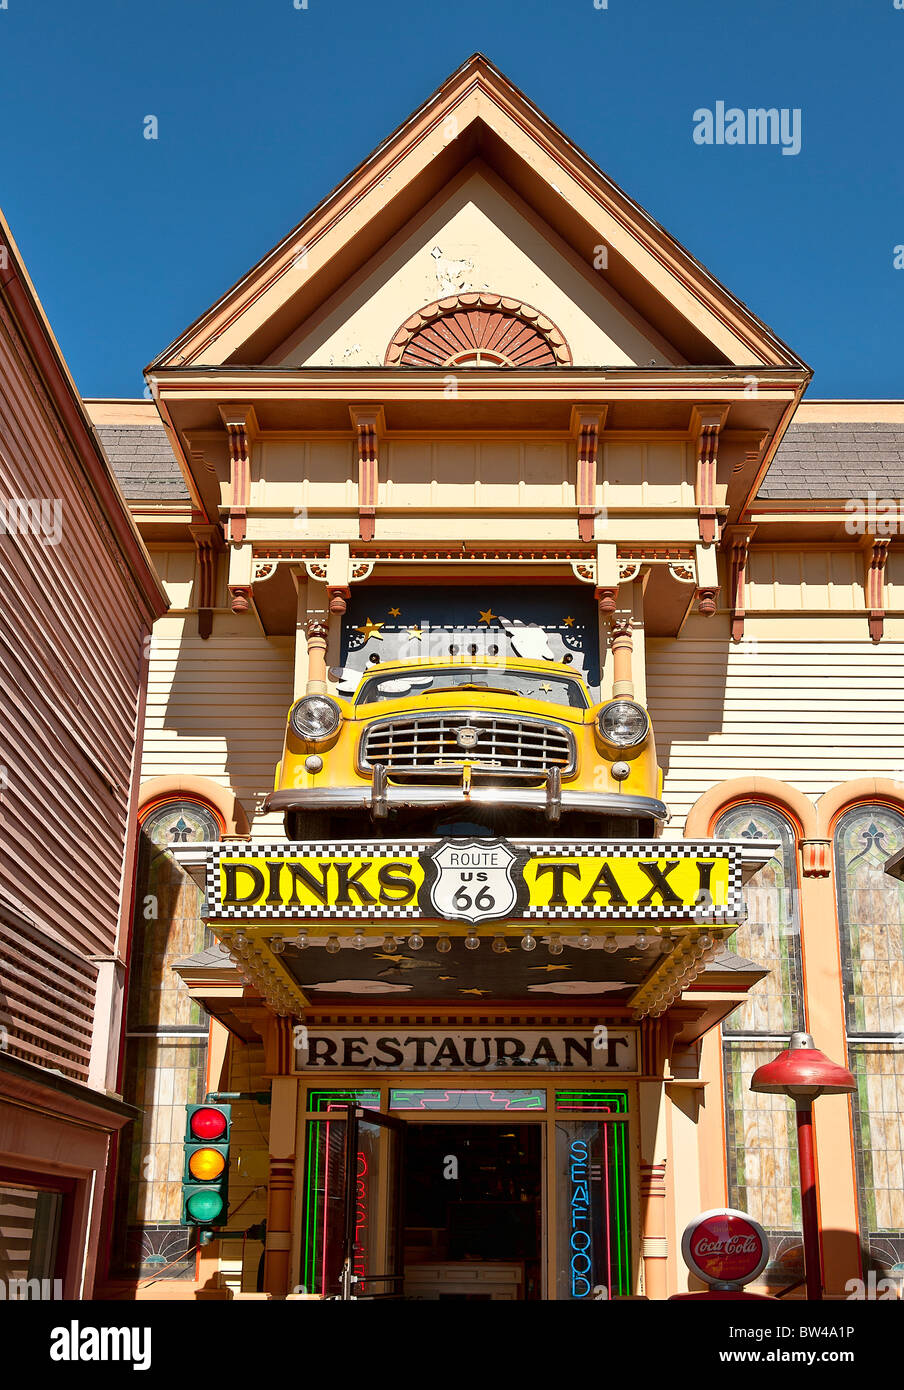 Route 66 Restaurant Bar Harbor Me Maine Usa Stock Photo